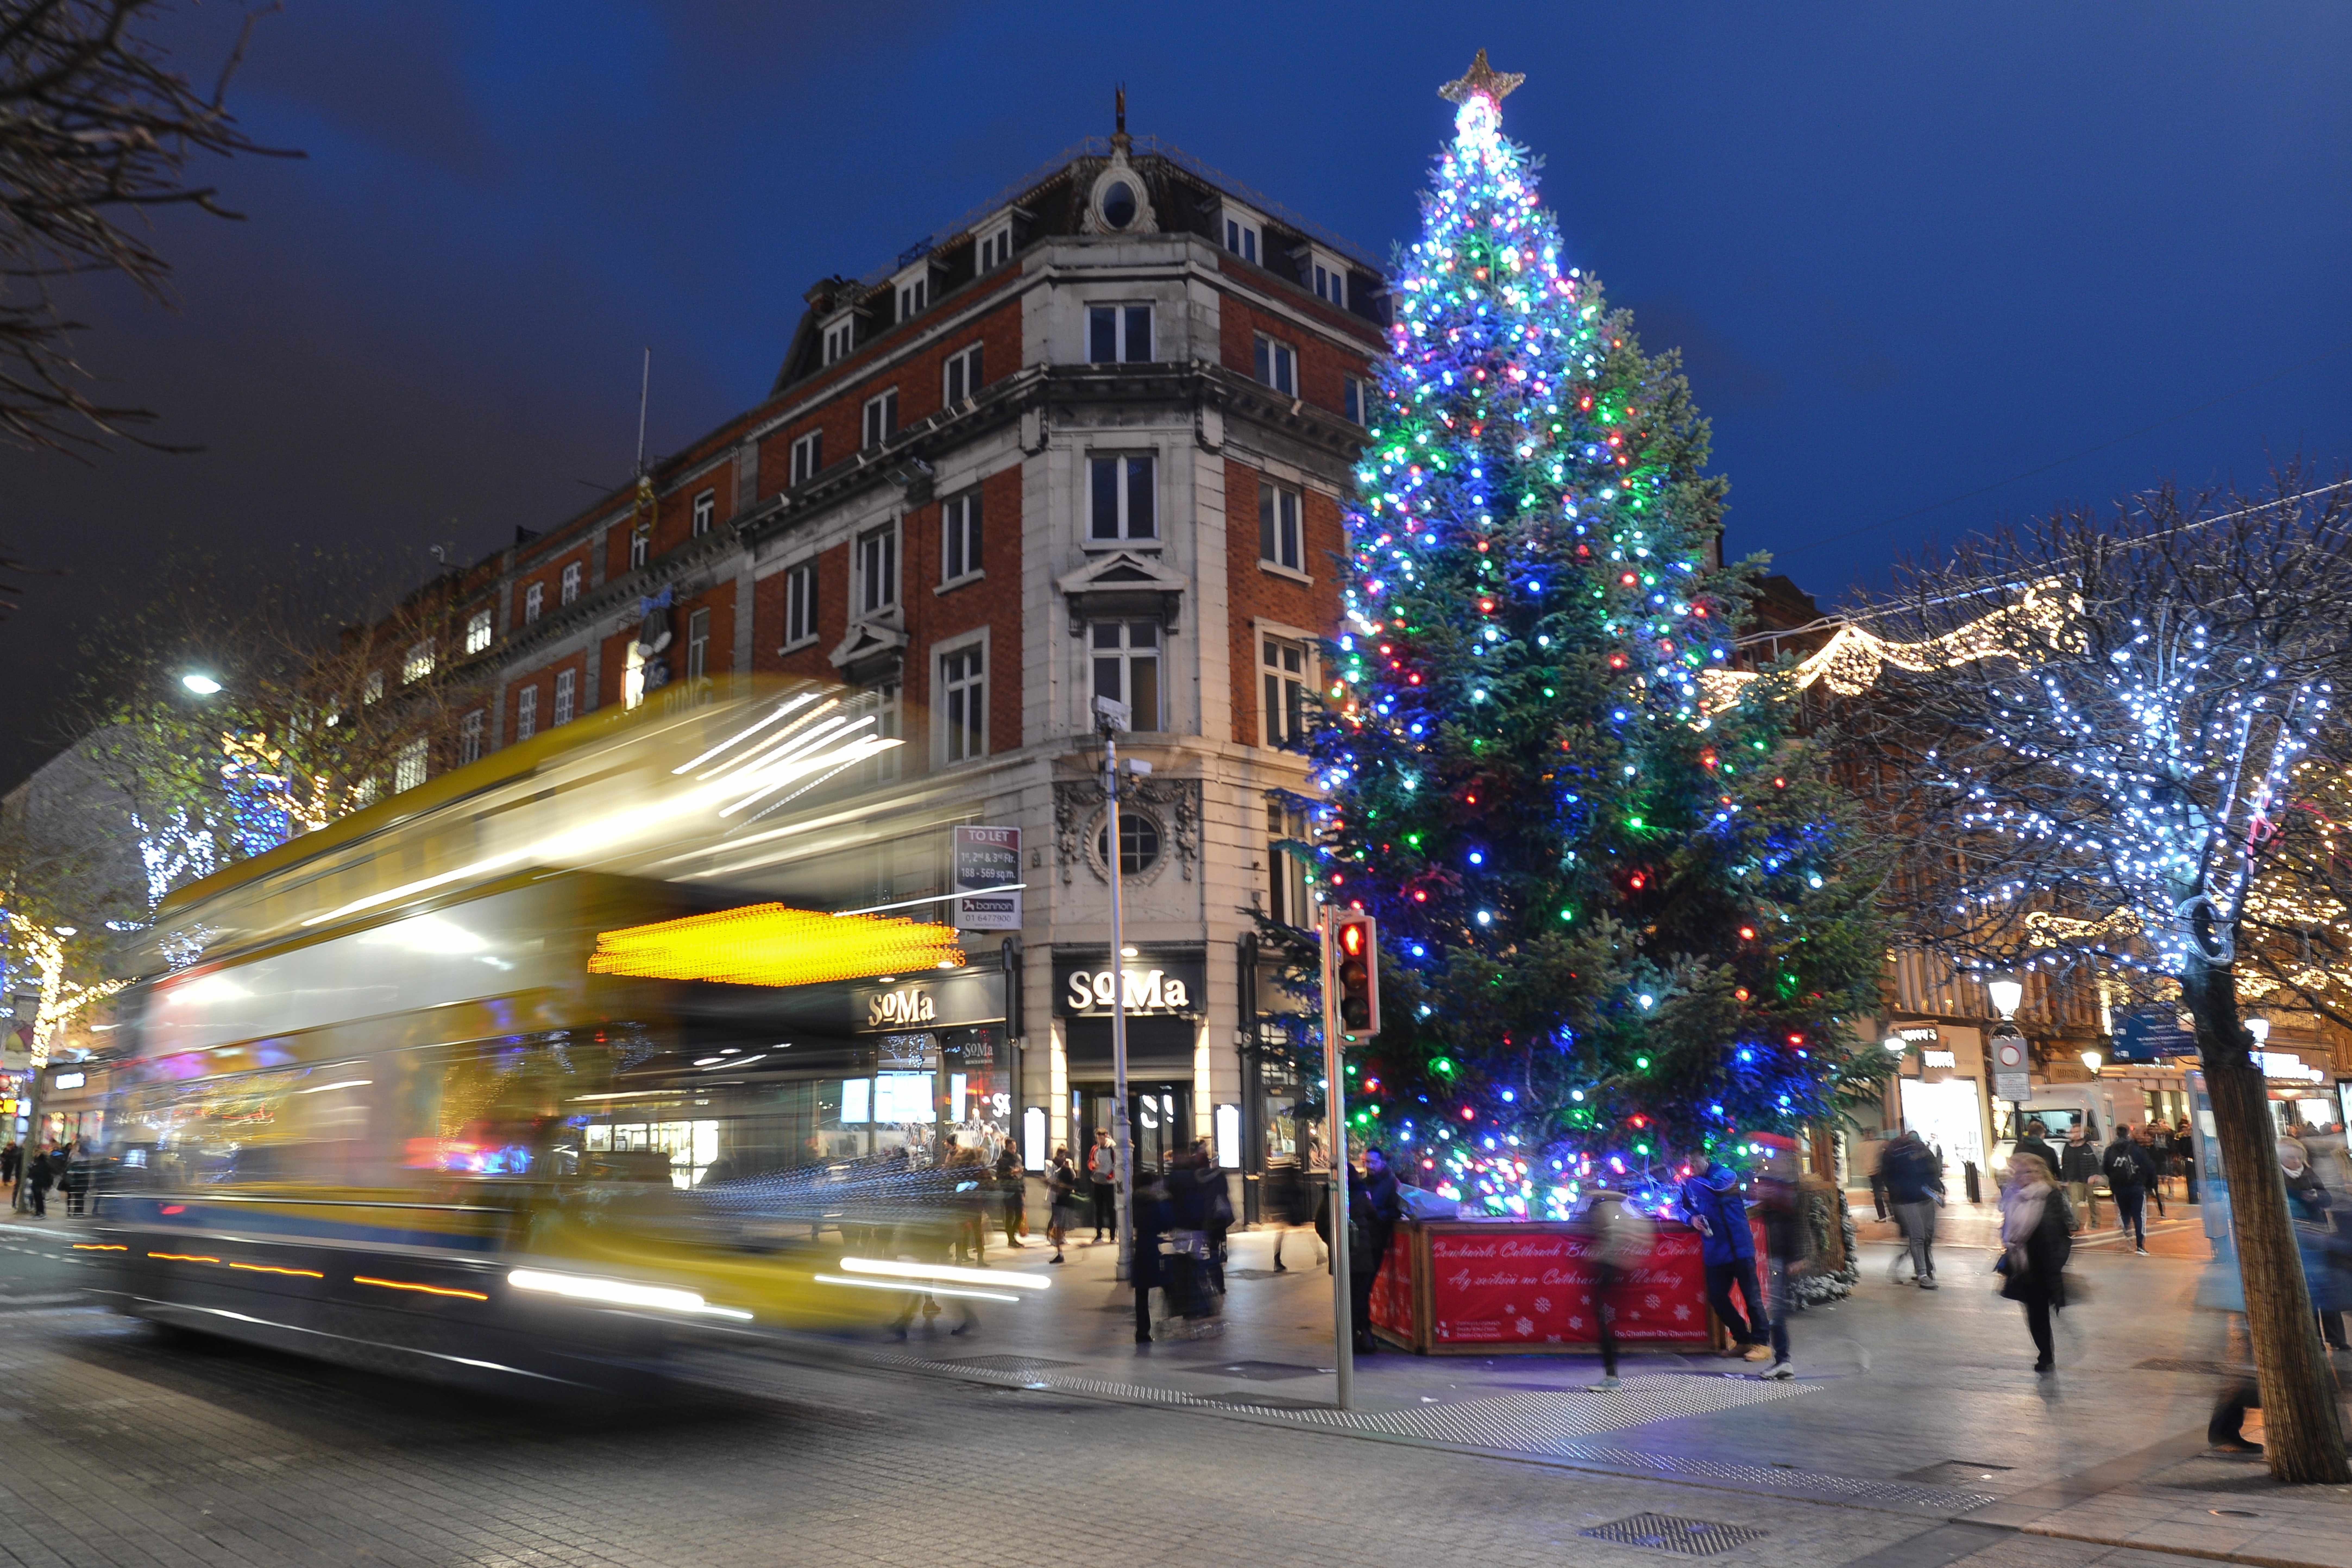 A view of a Christmas tree on Dublin's O'Connell Street, during the Christmas Season 2018. On Tuesday, December 11, 2018, in Dublin, Ireland. (Photo by Artur Widak/NurPhoto via Getty Images)